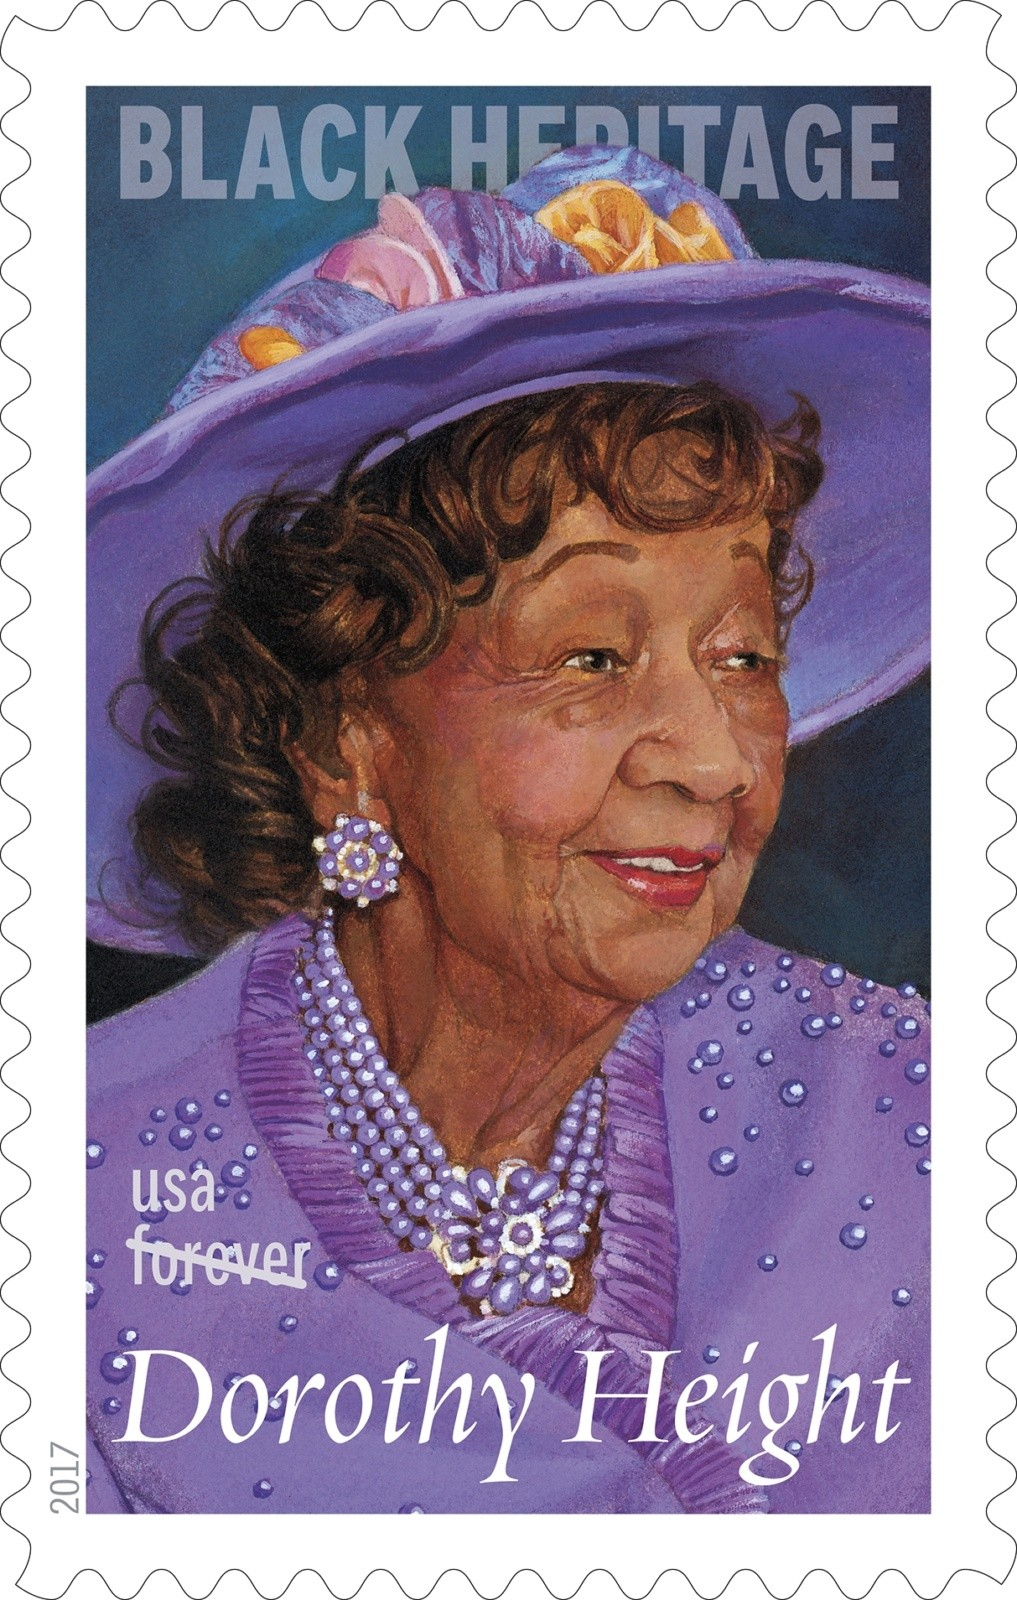 Stamp Honoring Civil Rights Activist Dorothy Height Celebrates Black History Month